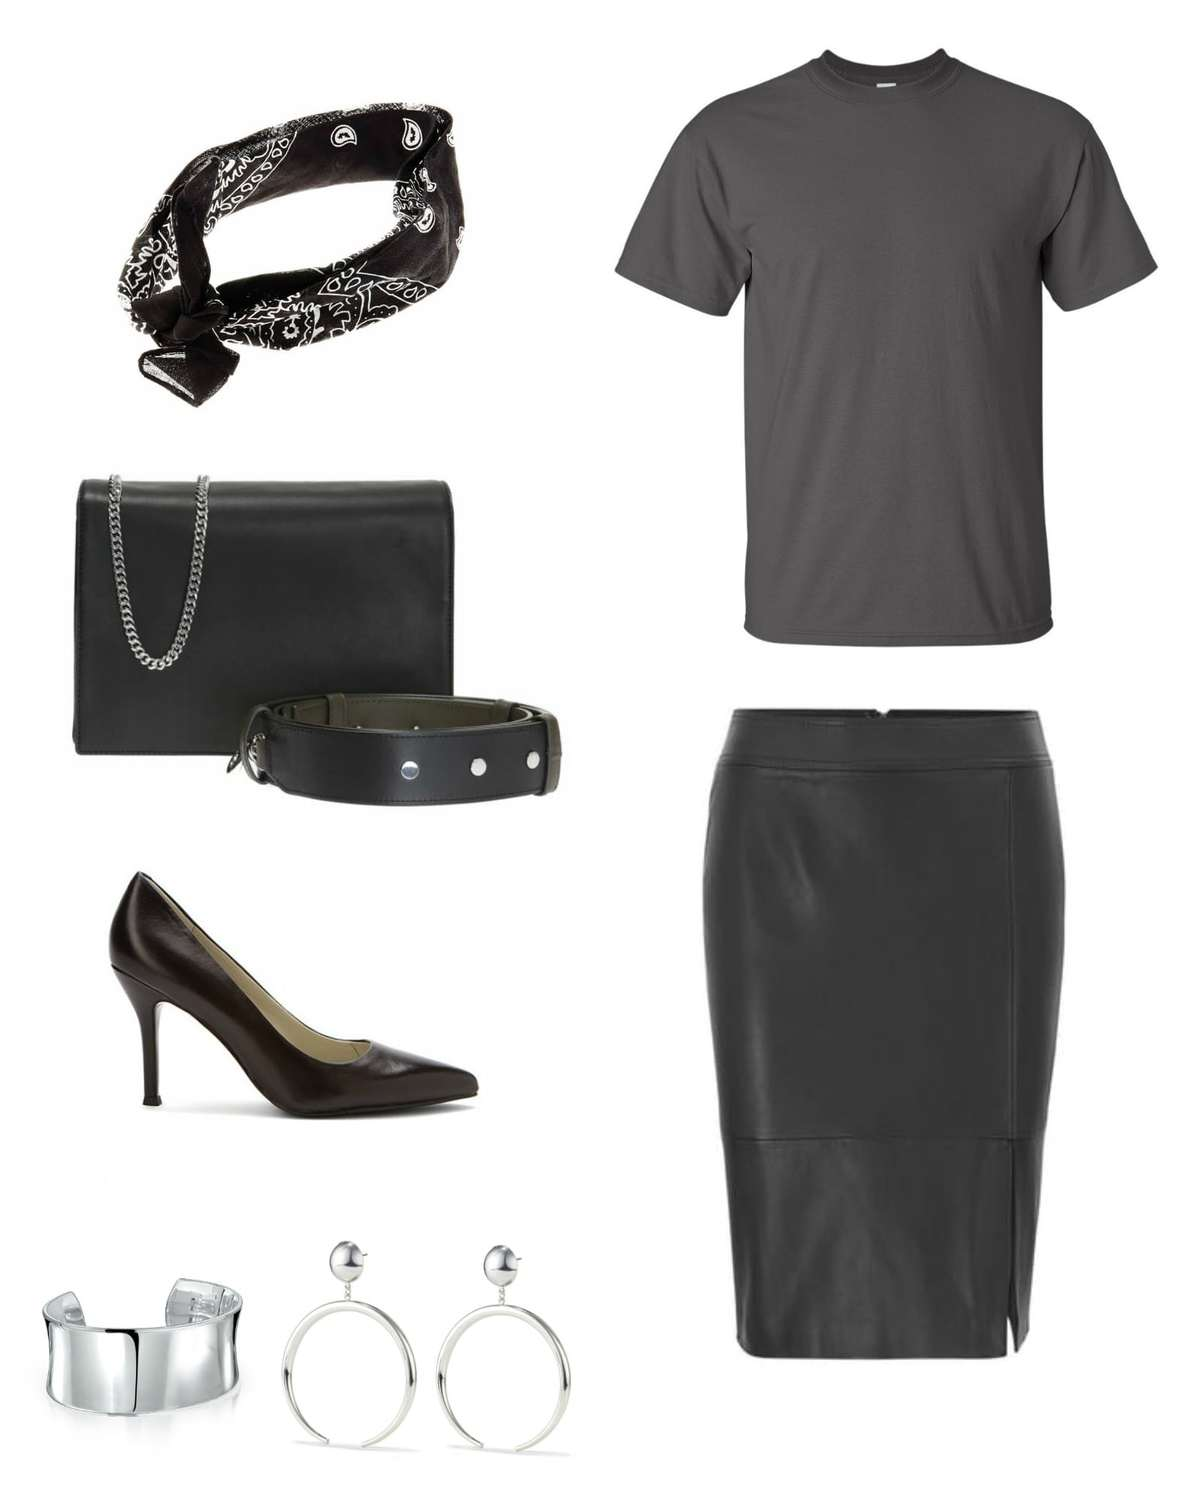 Image is of the Universal Standard T Rex in Gray with a black leather pencil skirt, black bandana, black Zep handbag from ALLSAINTS, black pumps, a silver cuff, and silver Jenny Bird statement earrings.